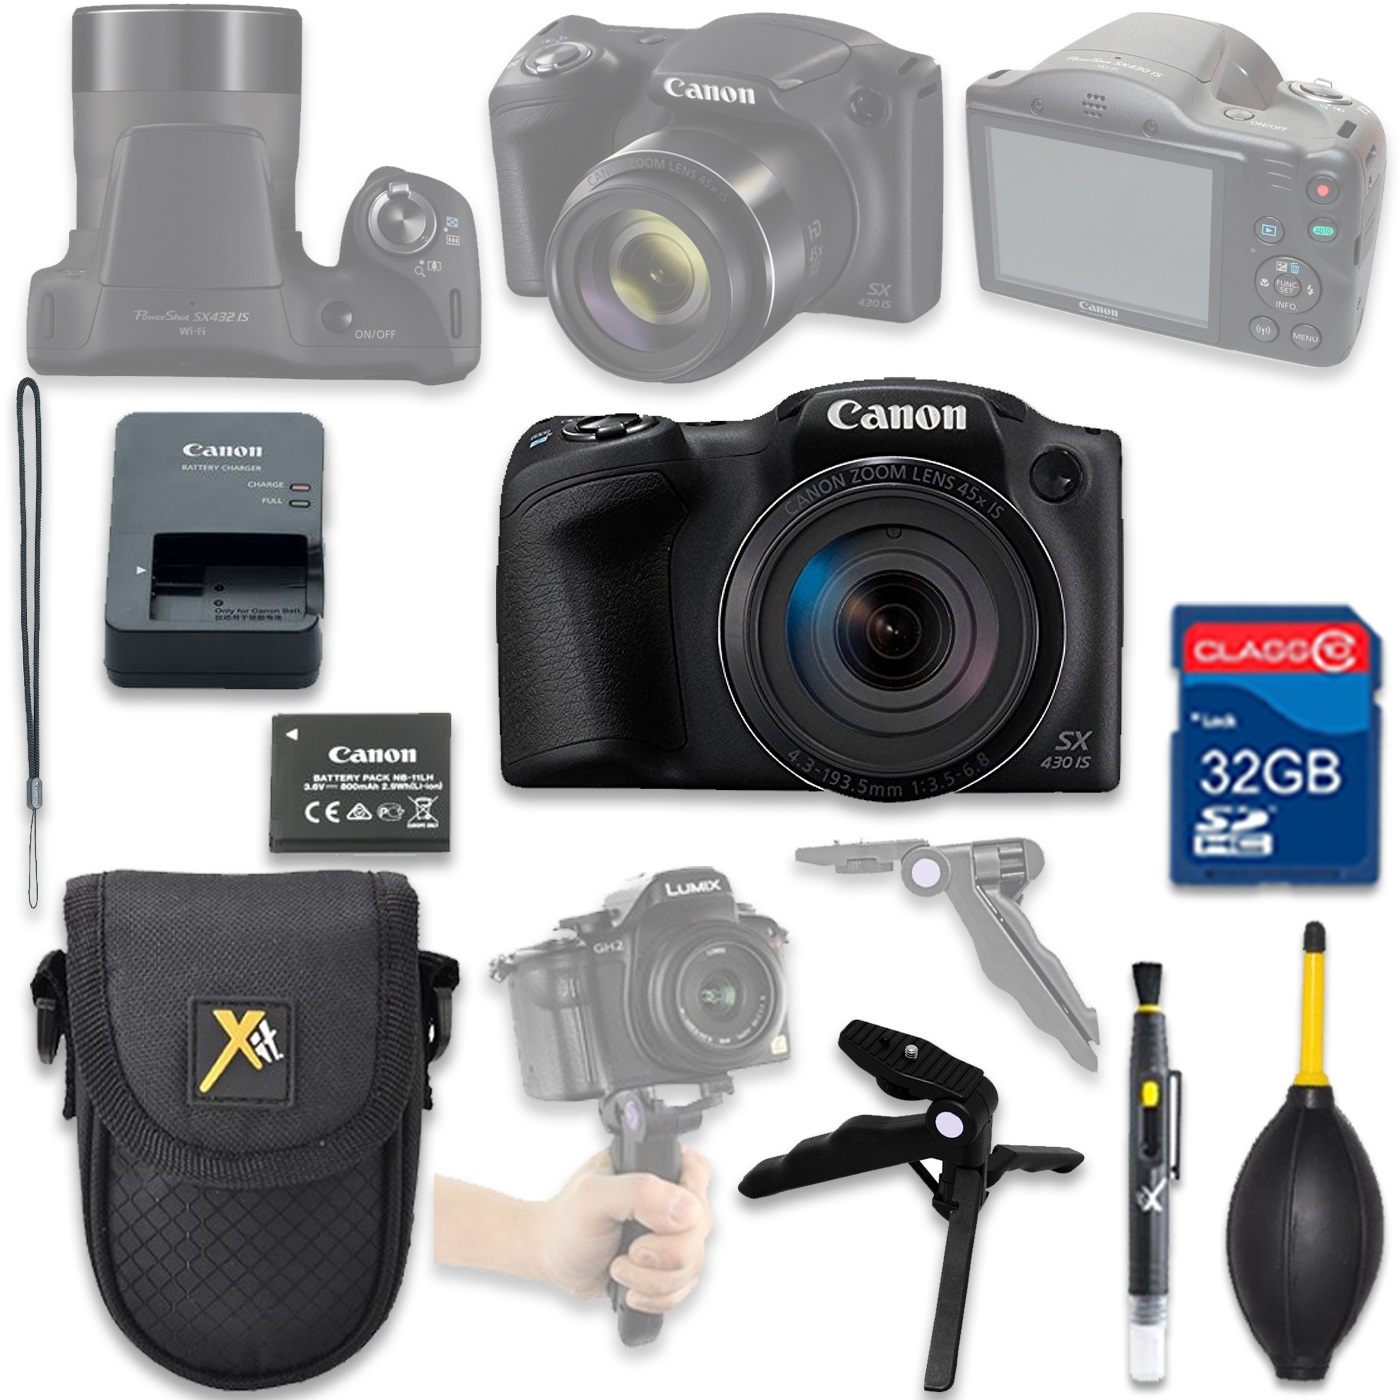 Canon PowerShot SX430 IS Digital Camera(black) with 32GB SD Memory Card + Accessory Bundle